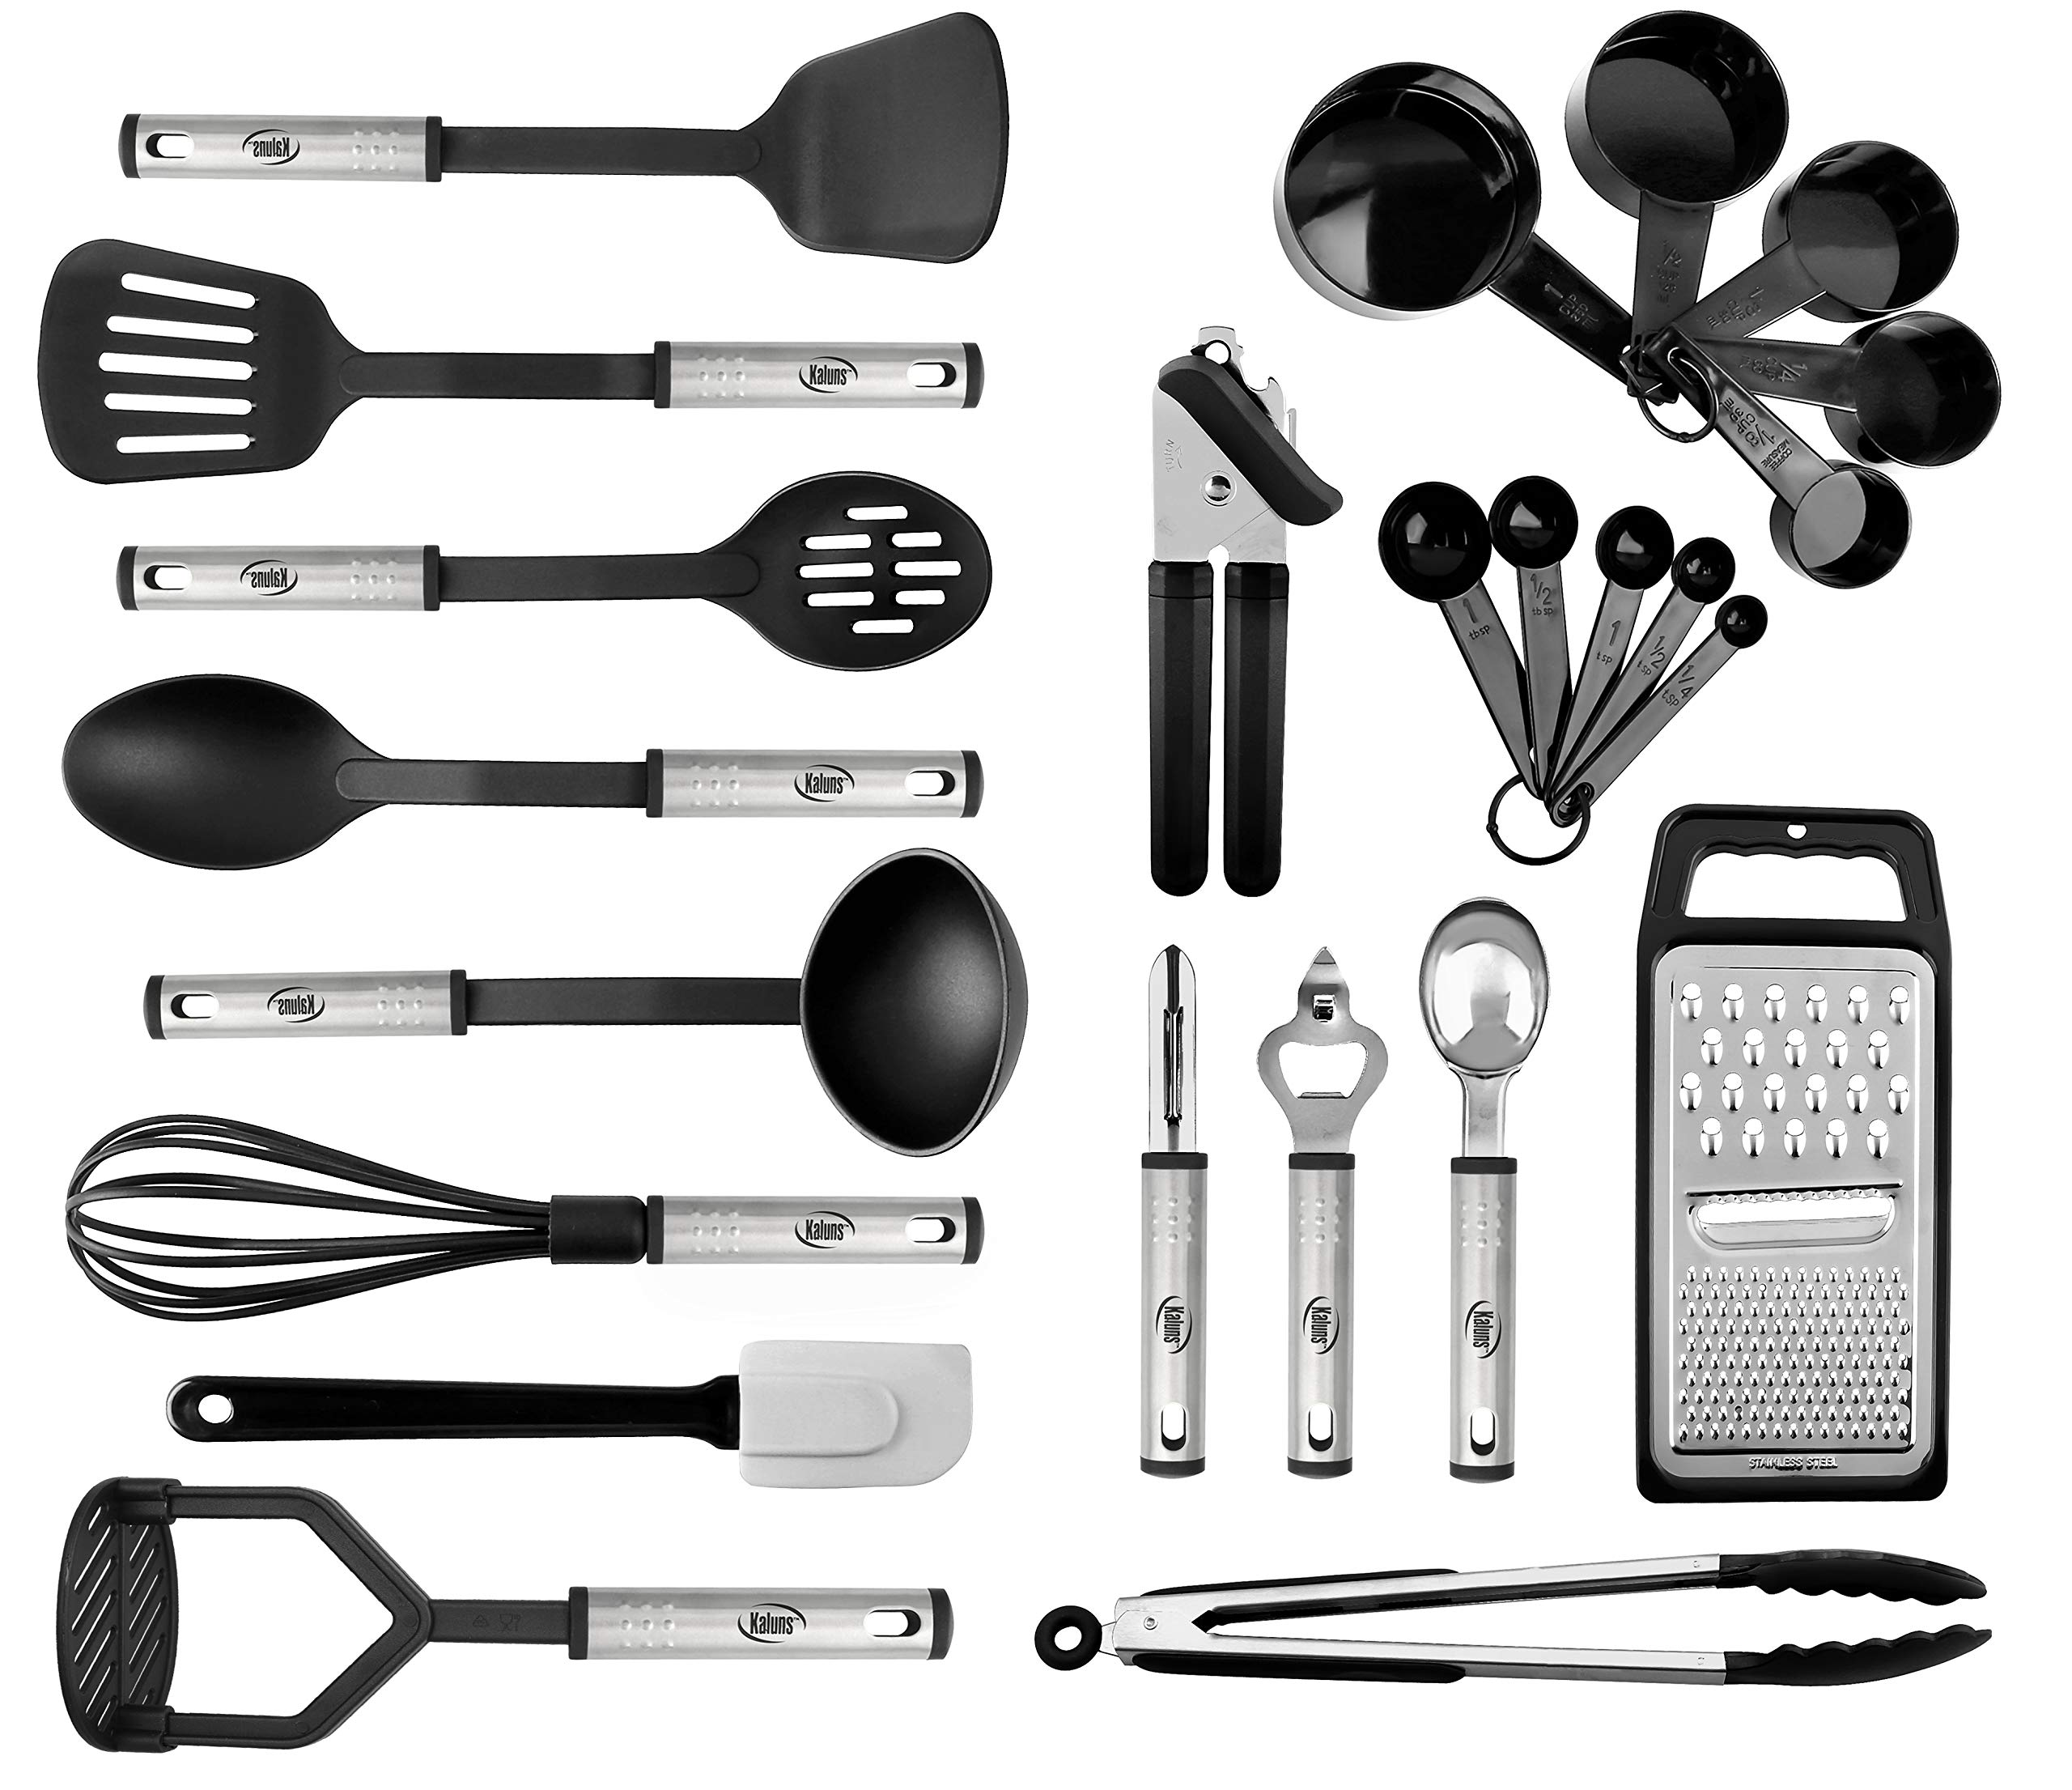 Kitchen Utensil set - 24 Nylon Stainless Steel Cooking Supplies - Non-Stick and Heat Resistant Cookware set - New Chef's Kitchen Gadget Tools Collection - Best for Pots and Pans - Great Holiday Gift by Kaluns